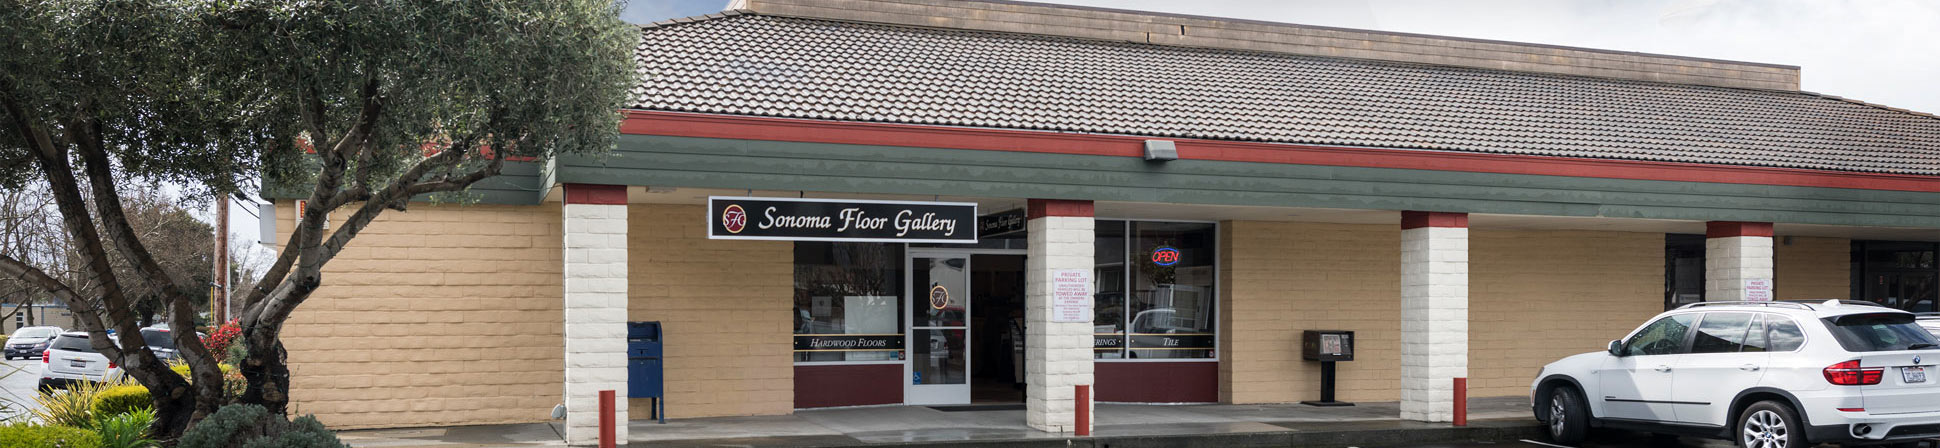 CONTACT US - SONOMA FLOOR GALLERY